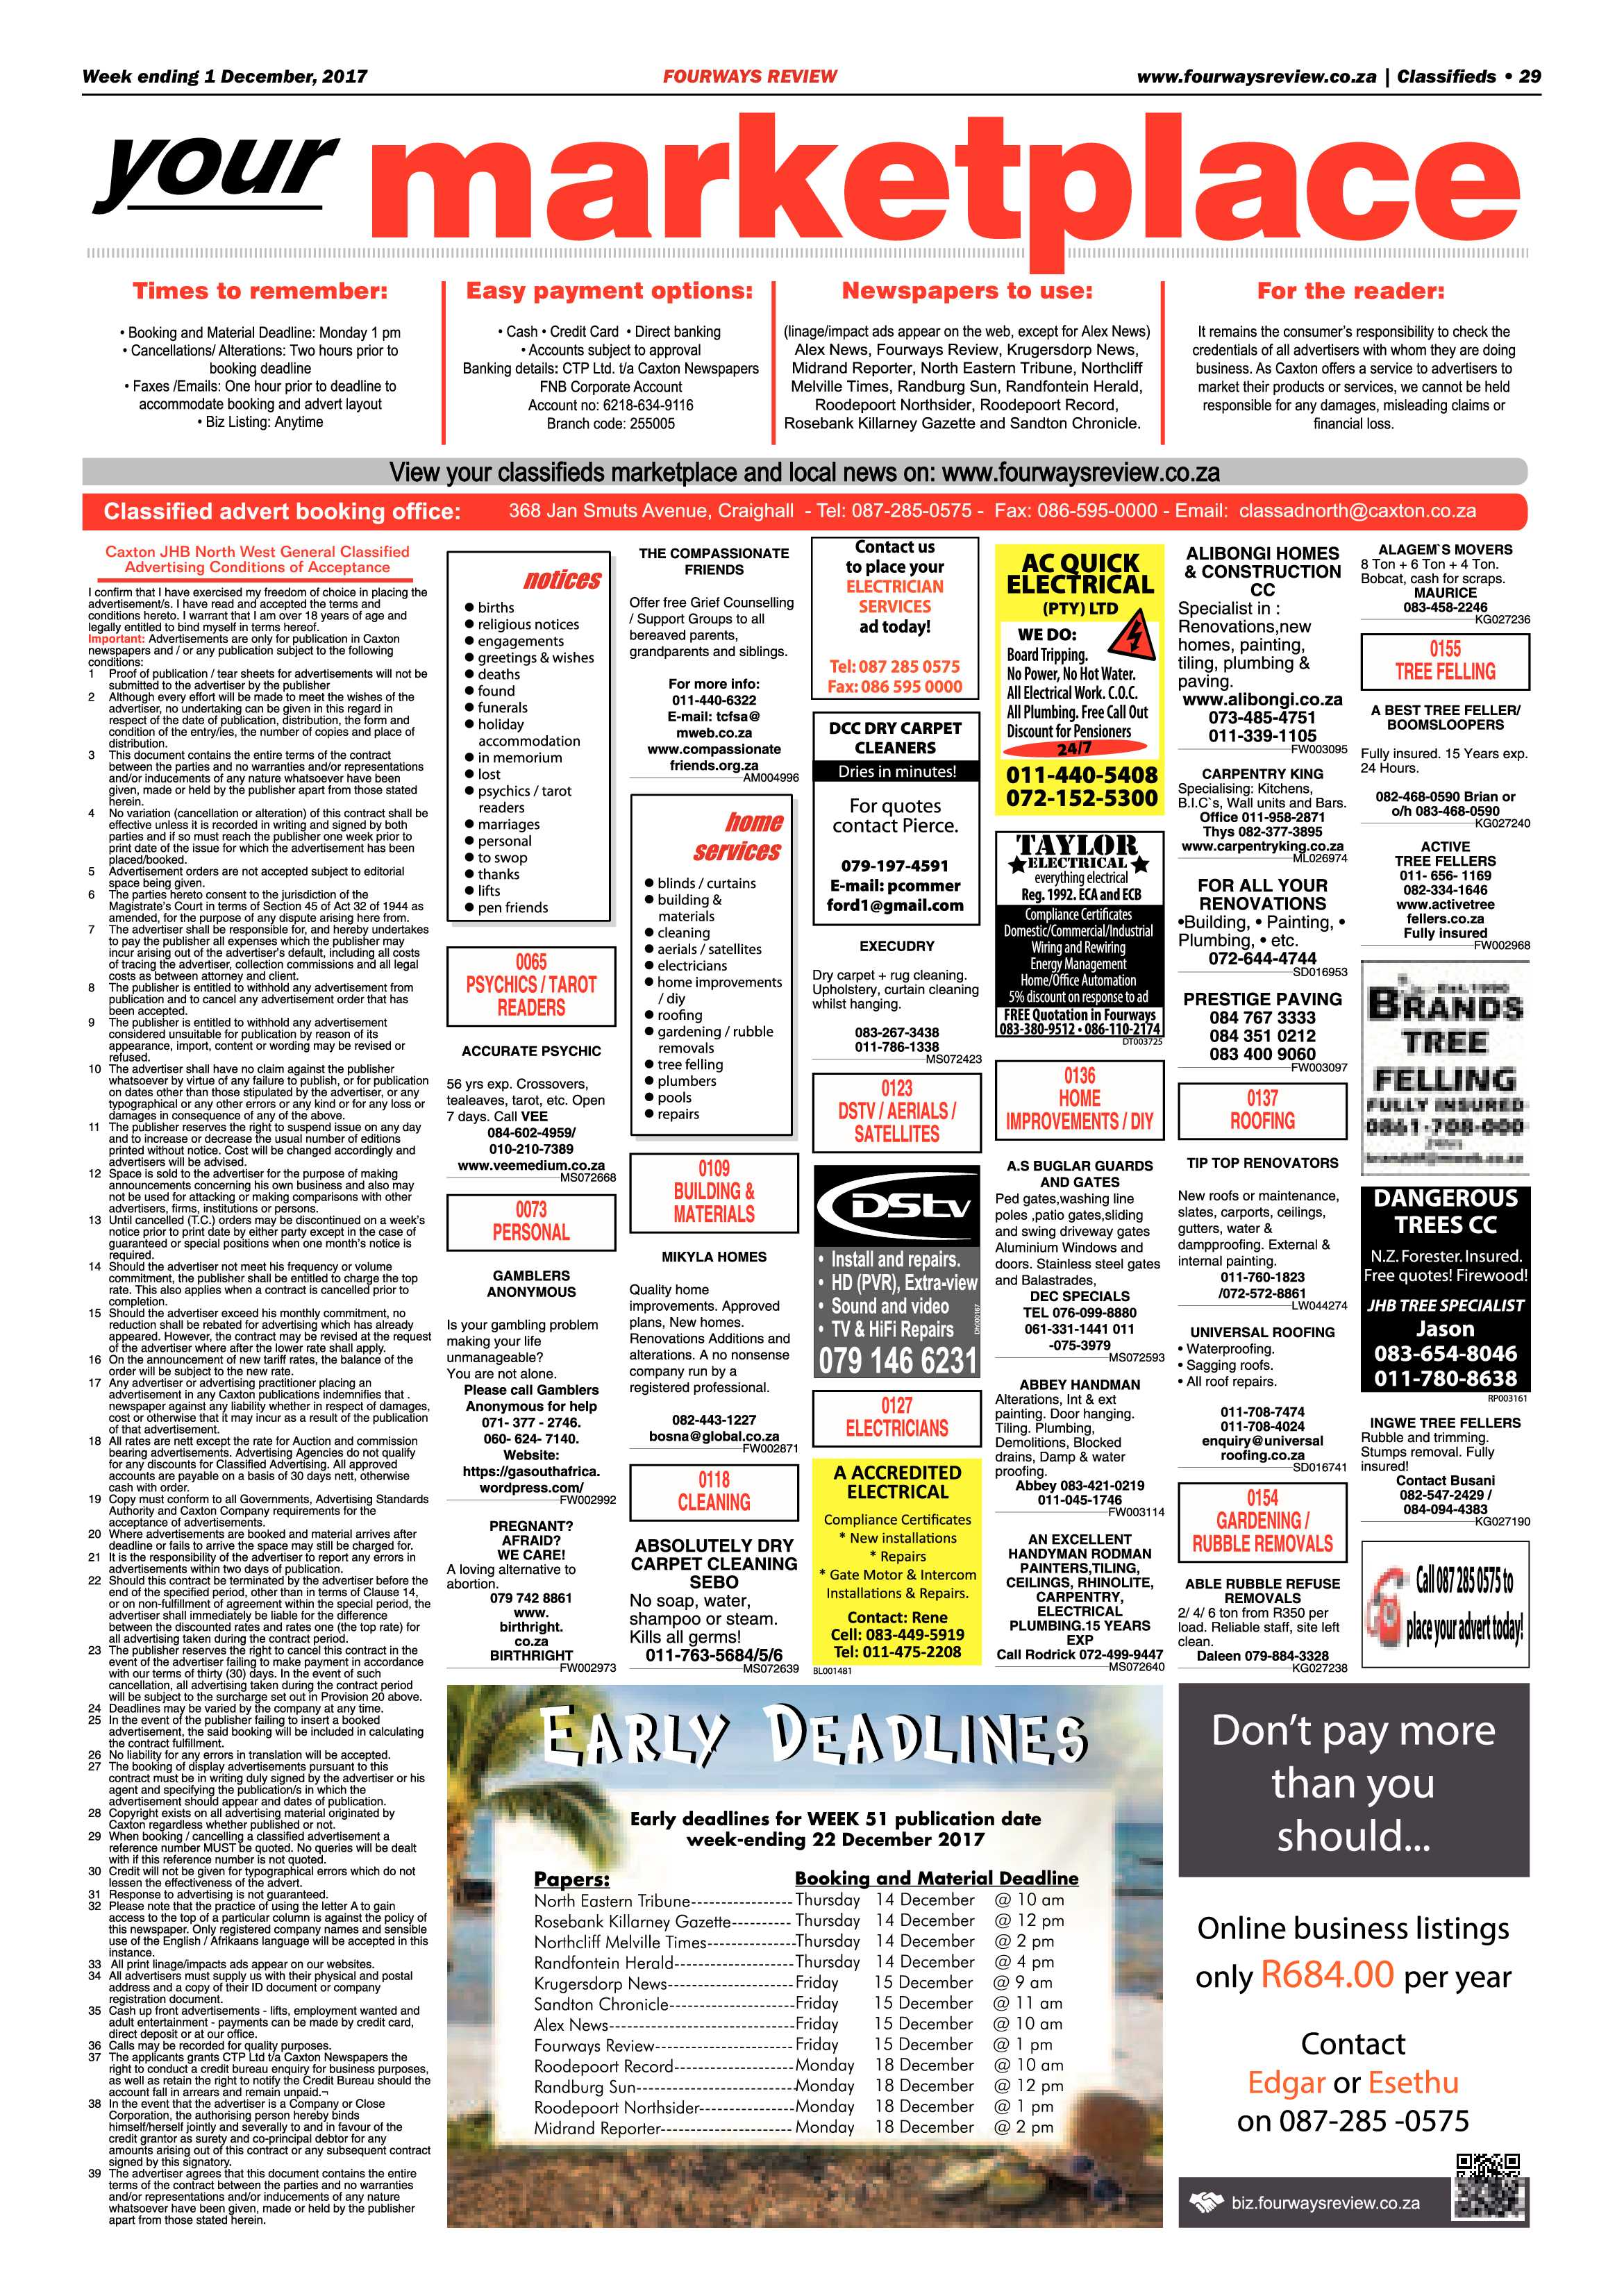 Fourways review 1 december fourways review fourways review 1 december epapers page 29 reheart Images